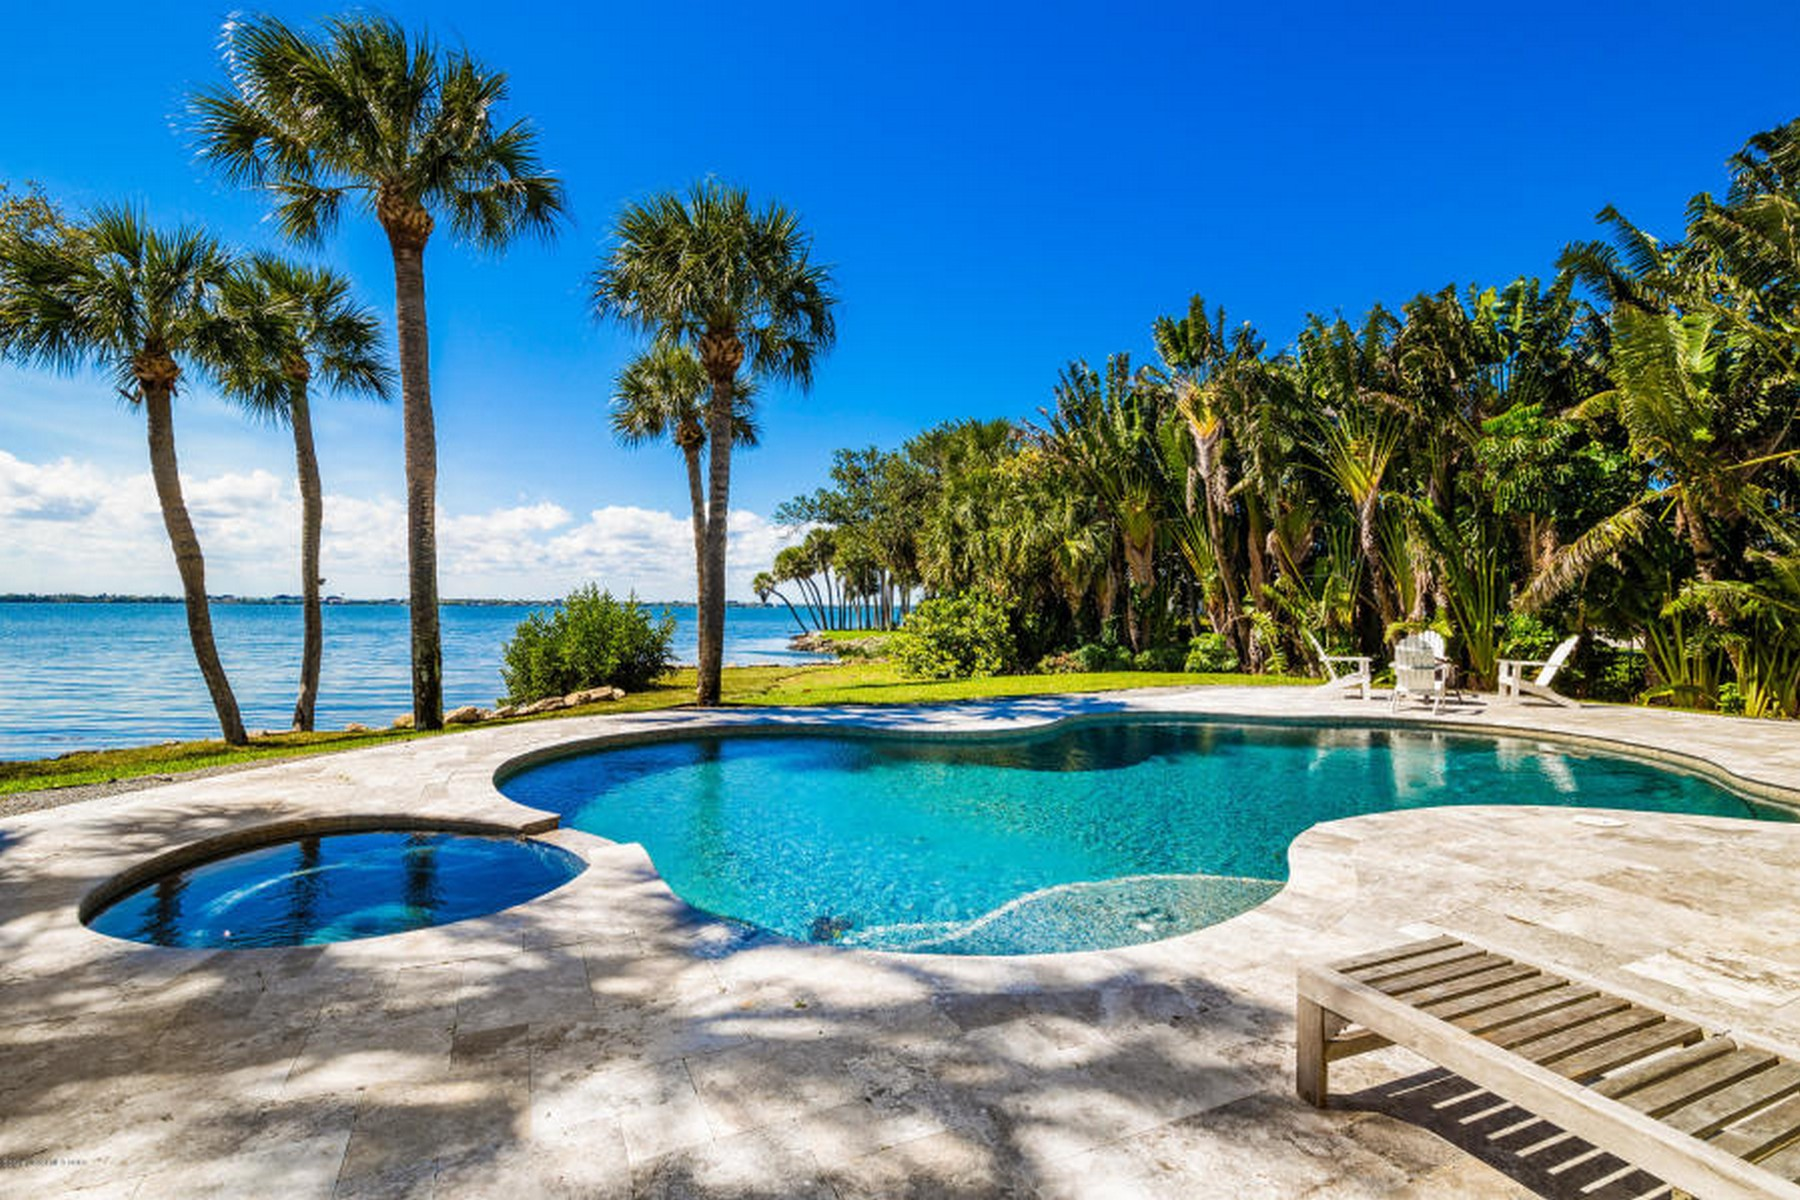 Additional photo for property listing at Stunning Riverfront Home Exuding Elegance & Inviting Comfort. 400 Richards Road Melbourne Beach, Florida 32951 United States